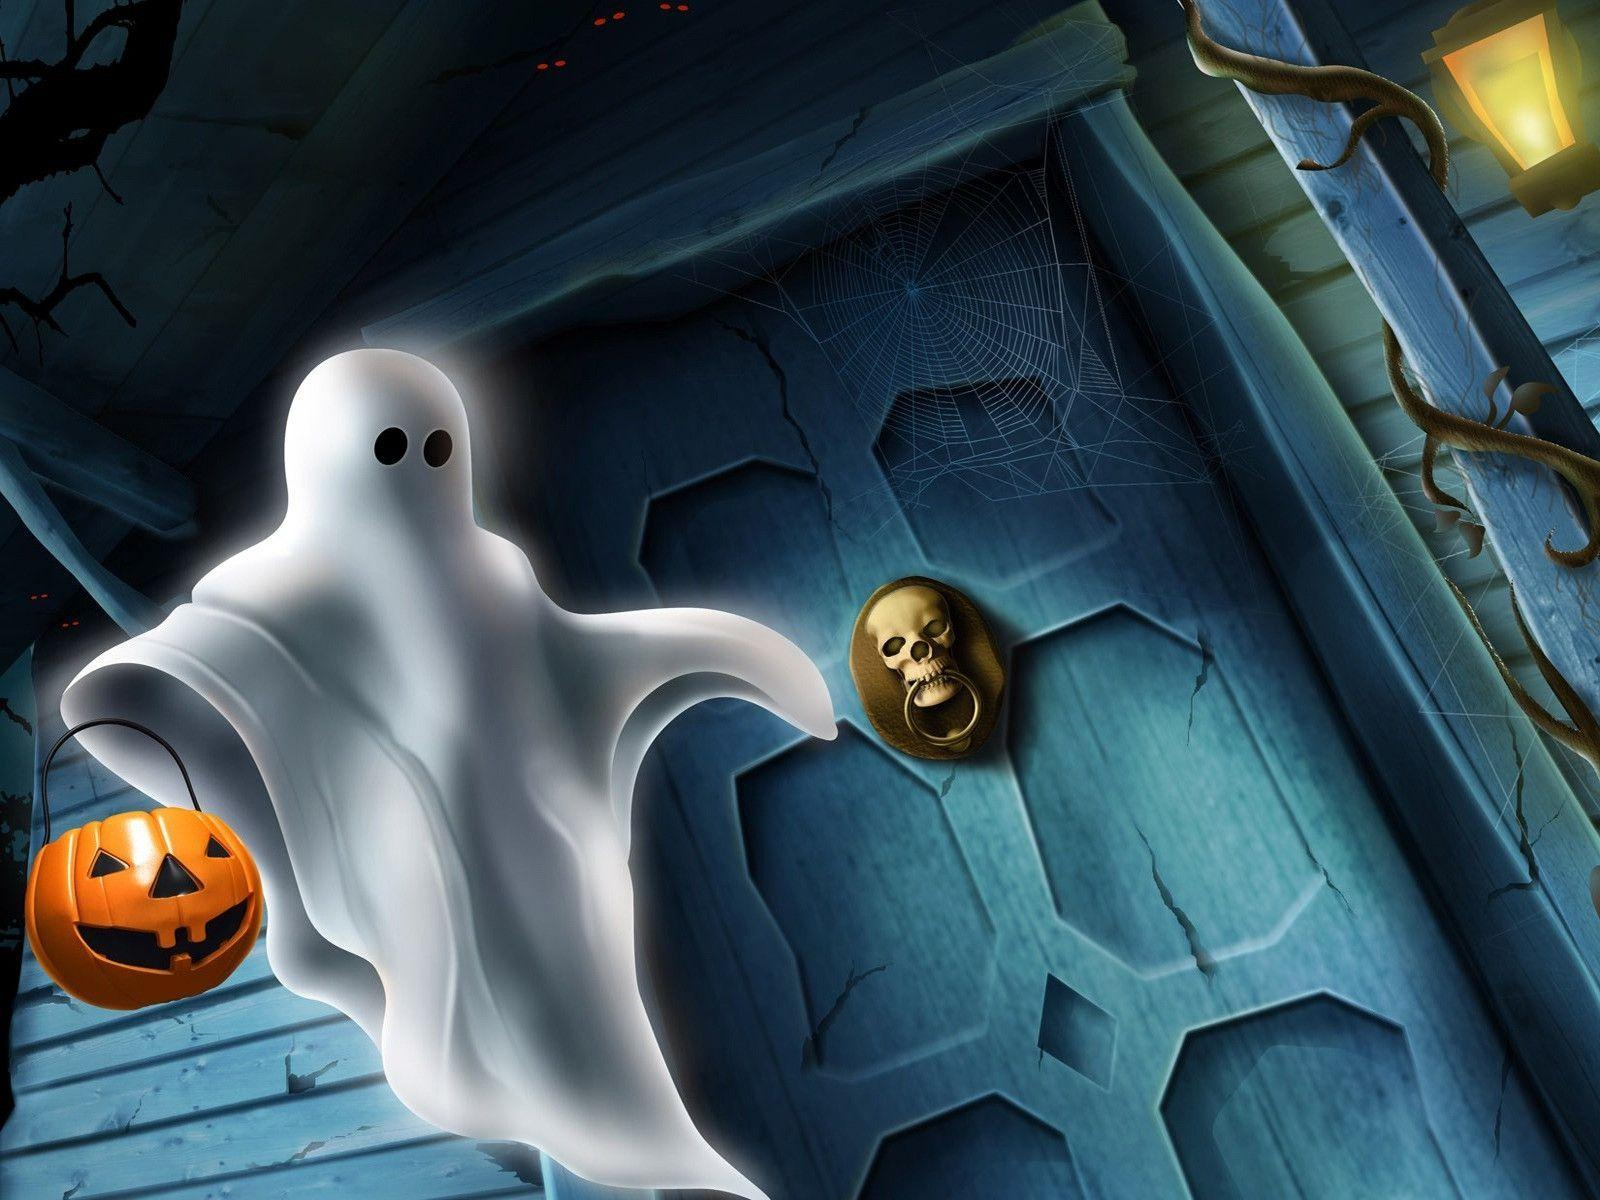 Halloween Smile In Haunted House Free Stock Photo And Wallpaper